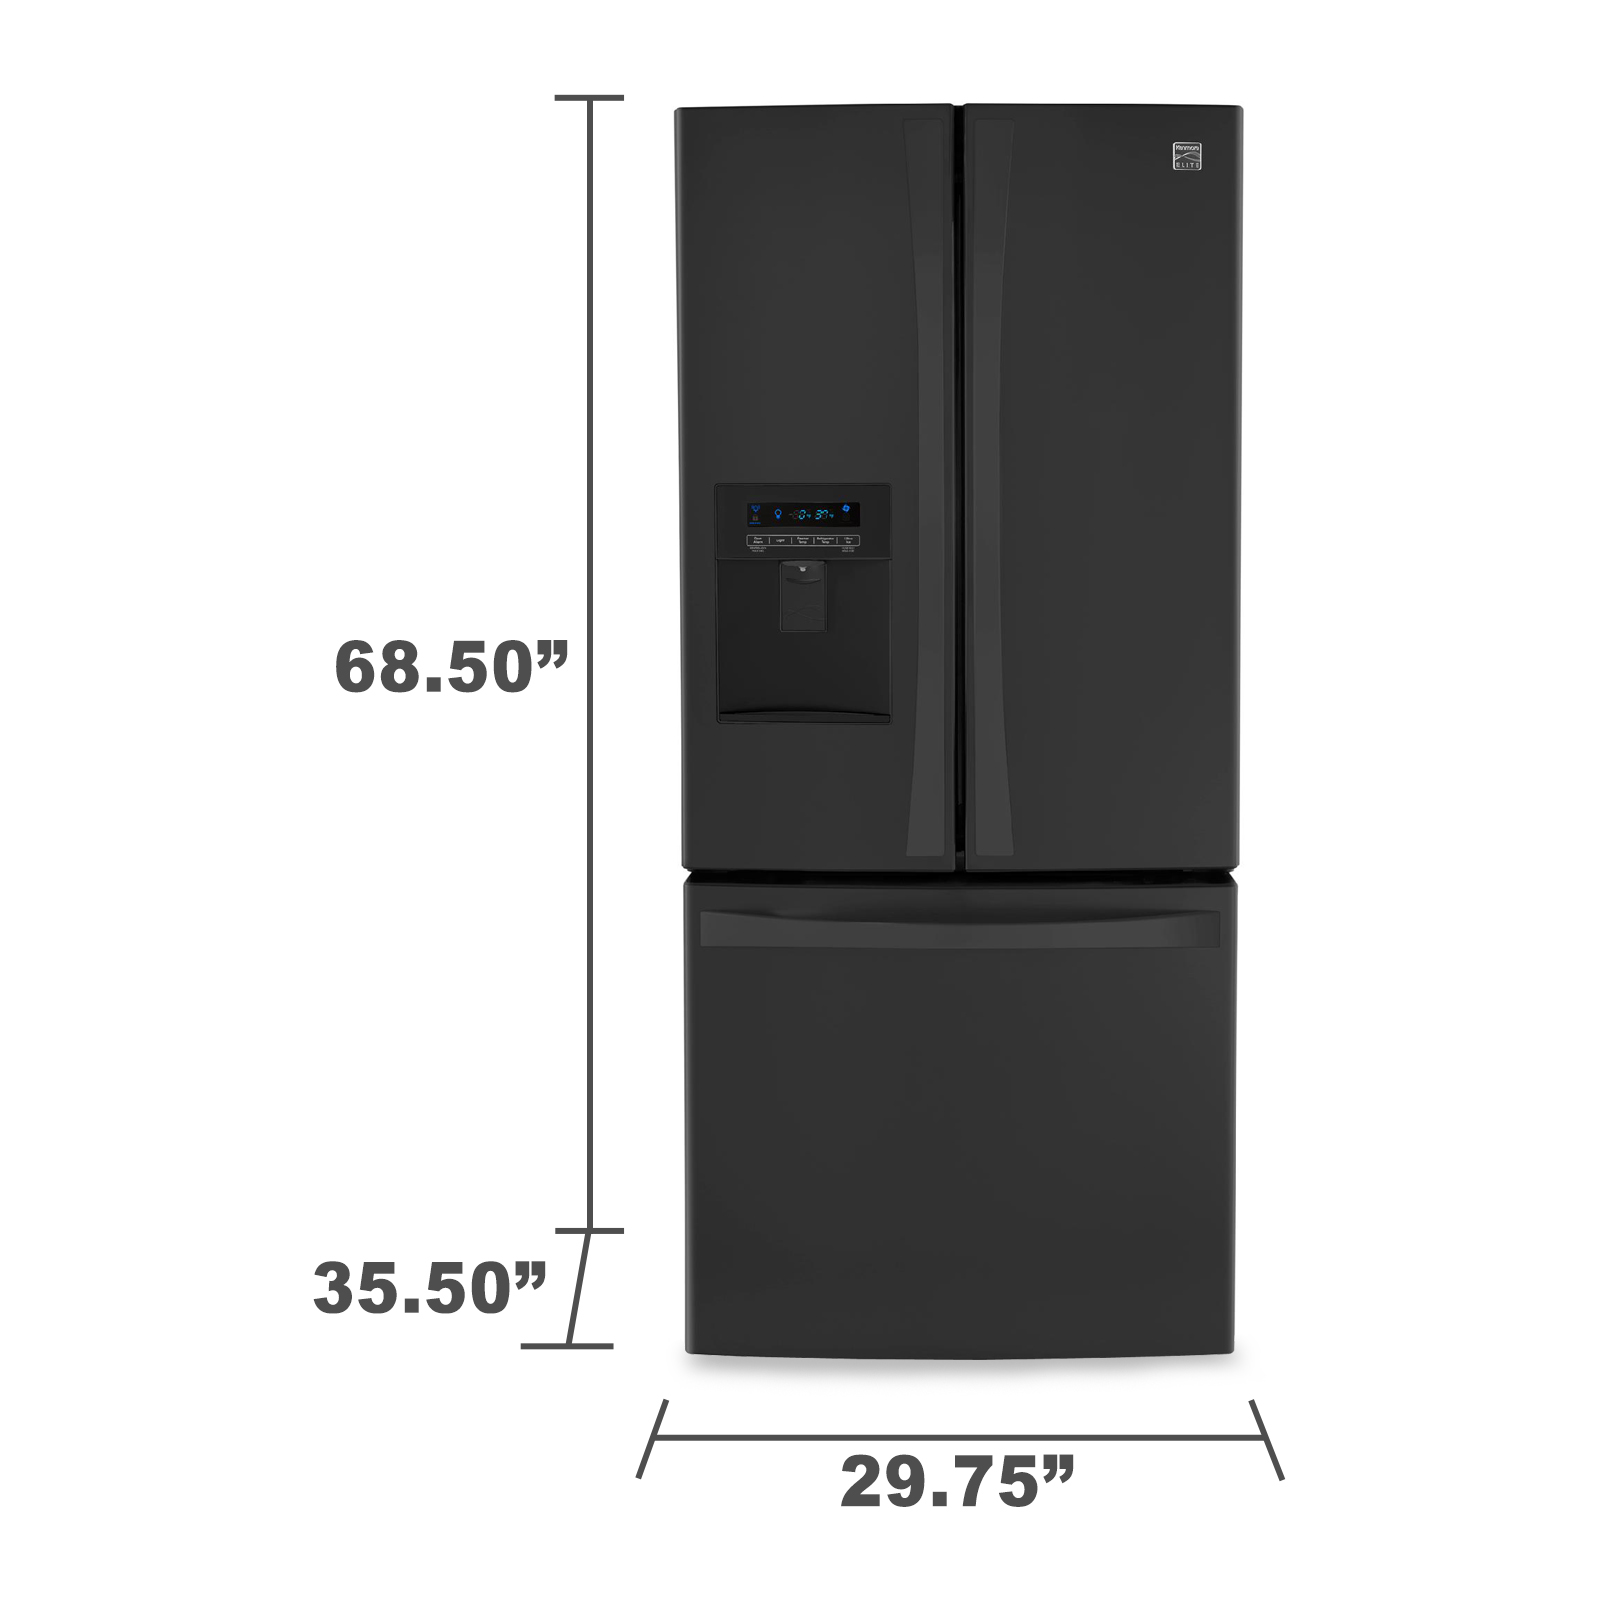 Kenmore Elite 71329 21.8 cu. ft. French Door Bottom-freezer Refrigerator w/ Water Dispenser - Black